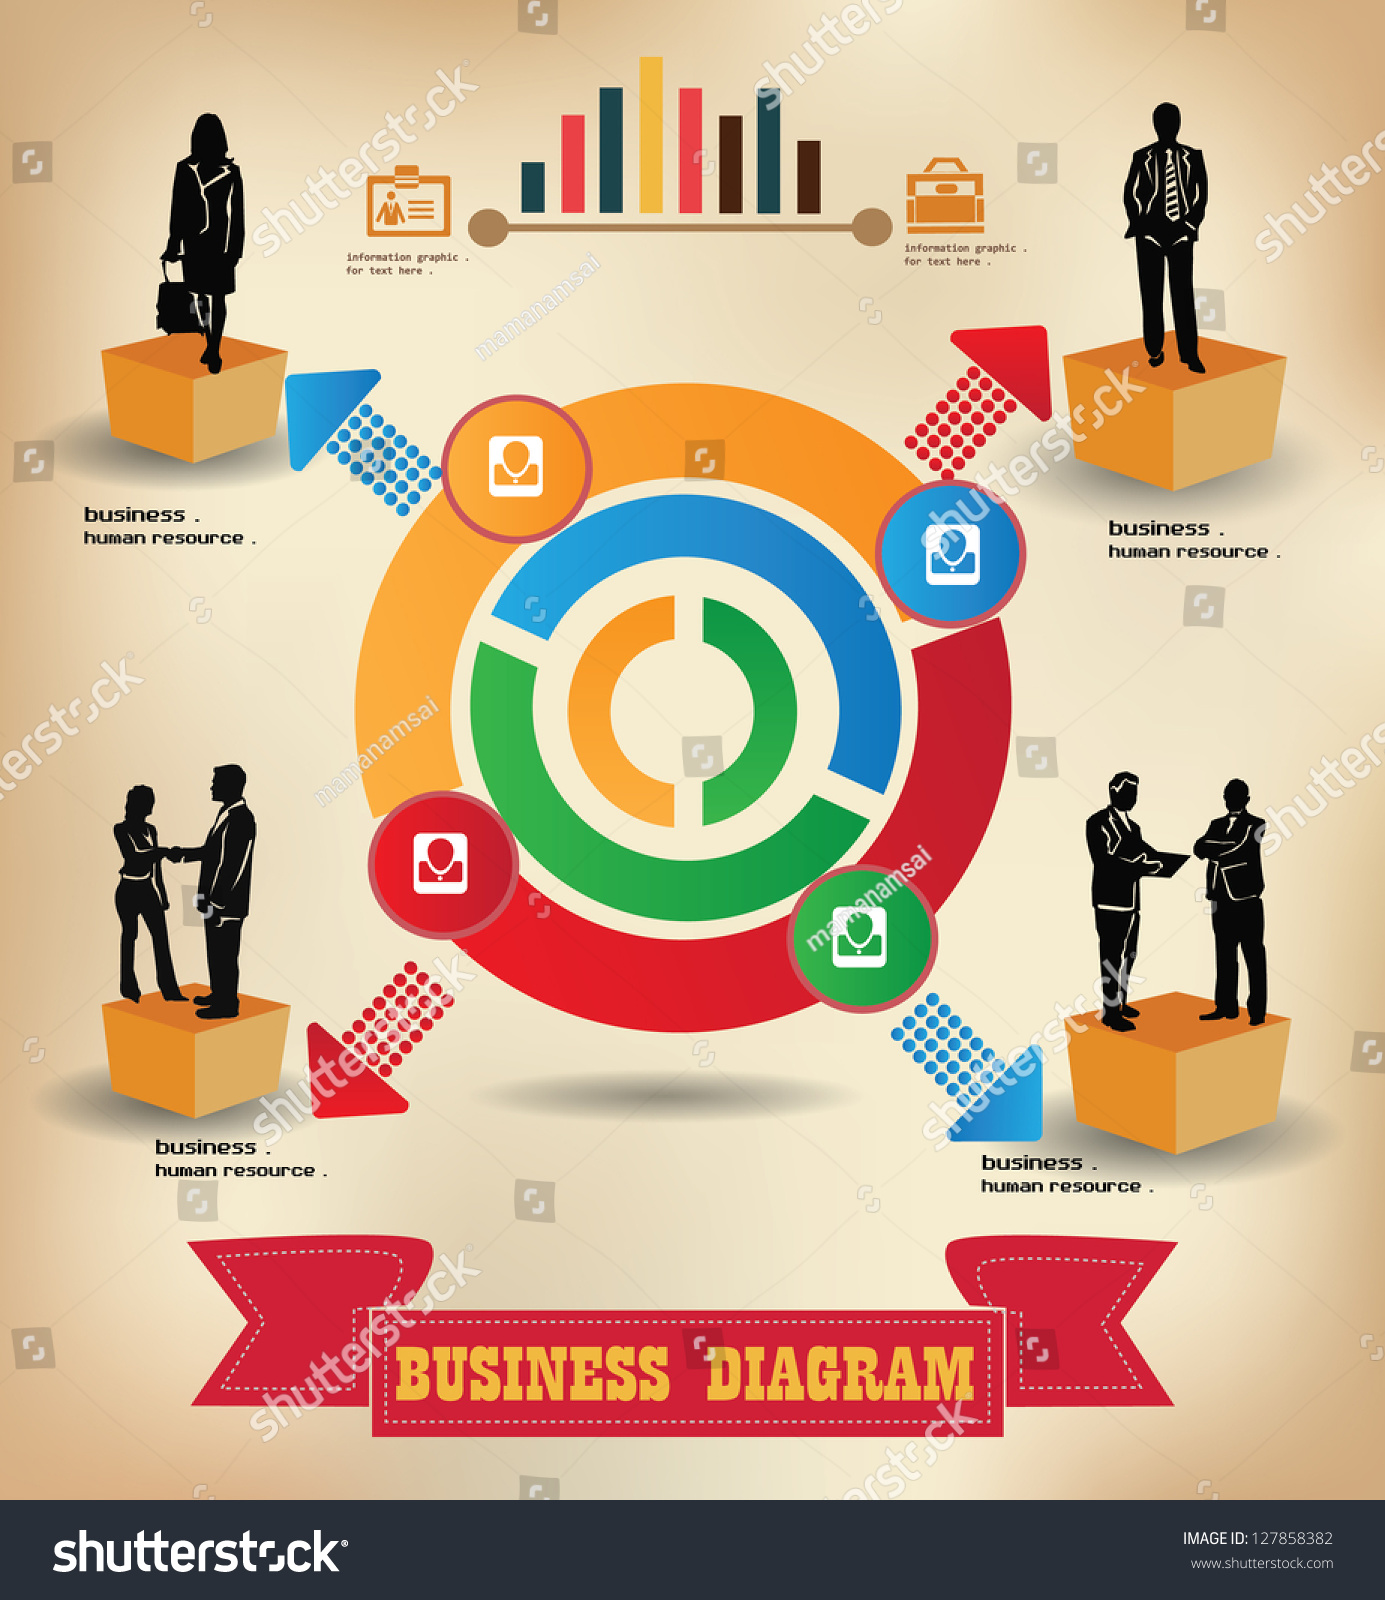 diagram charts business concept human resource vector       save to a lightbox